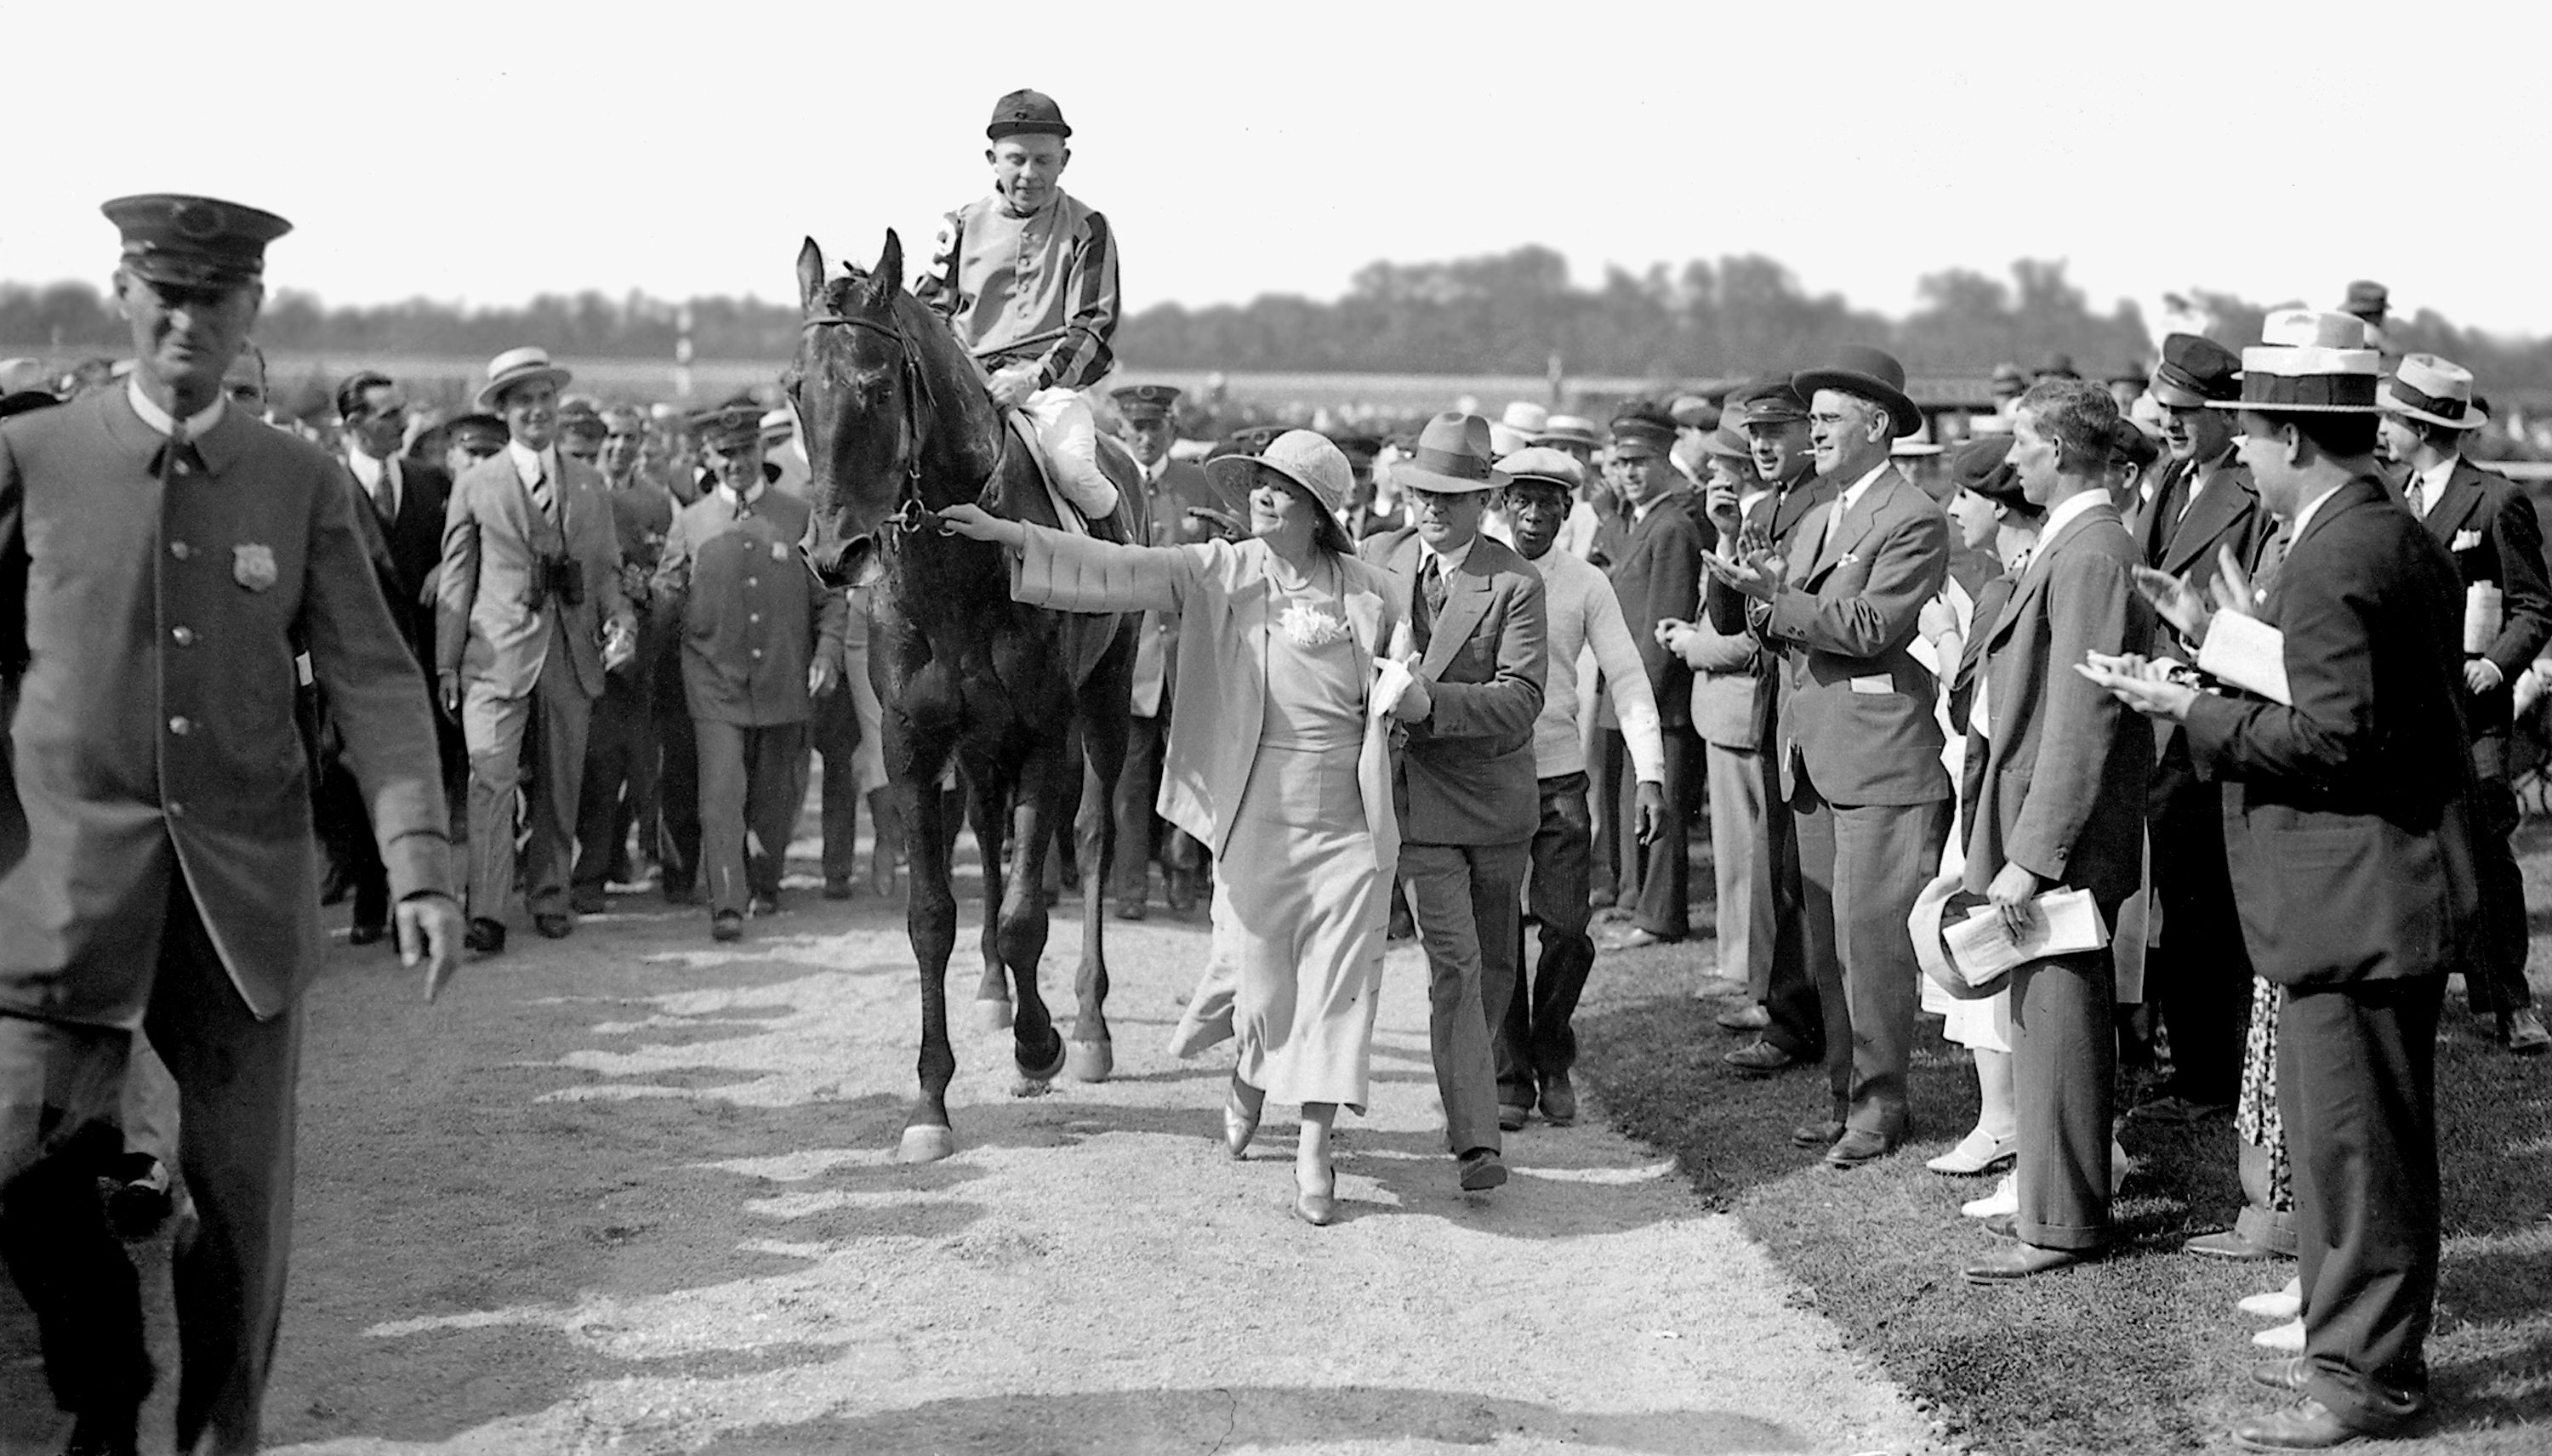 Helen Hay Whitney leading Twenty Grand, Charles Kurtsinger up, into the Belmont winner's circle (Keeneland Library Cook Collection)